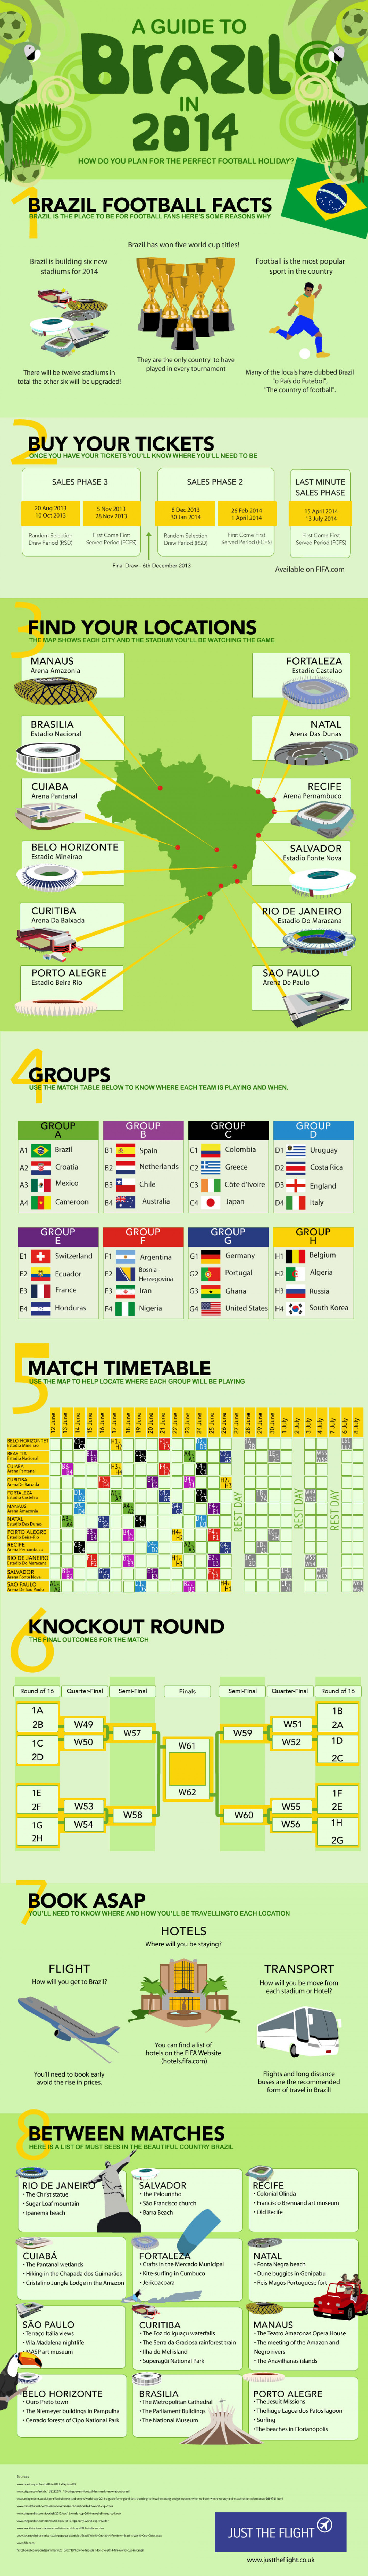 A Guide to Brazil in 2014 Infographic